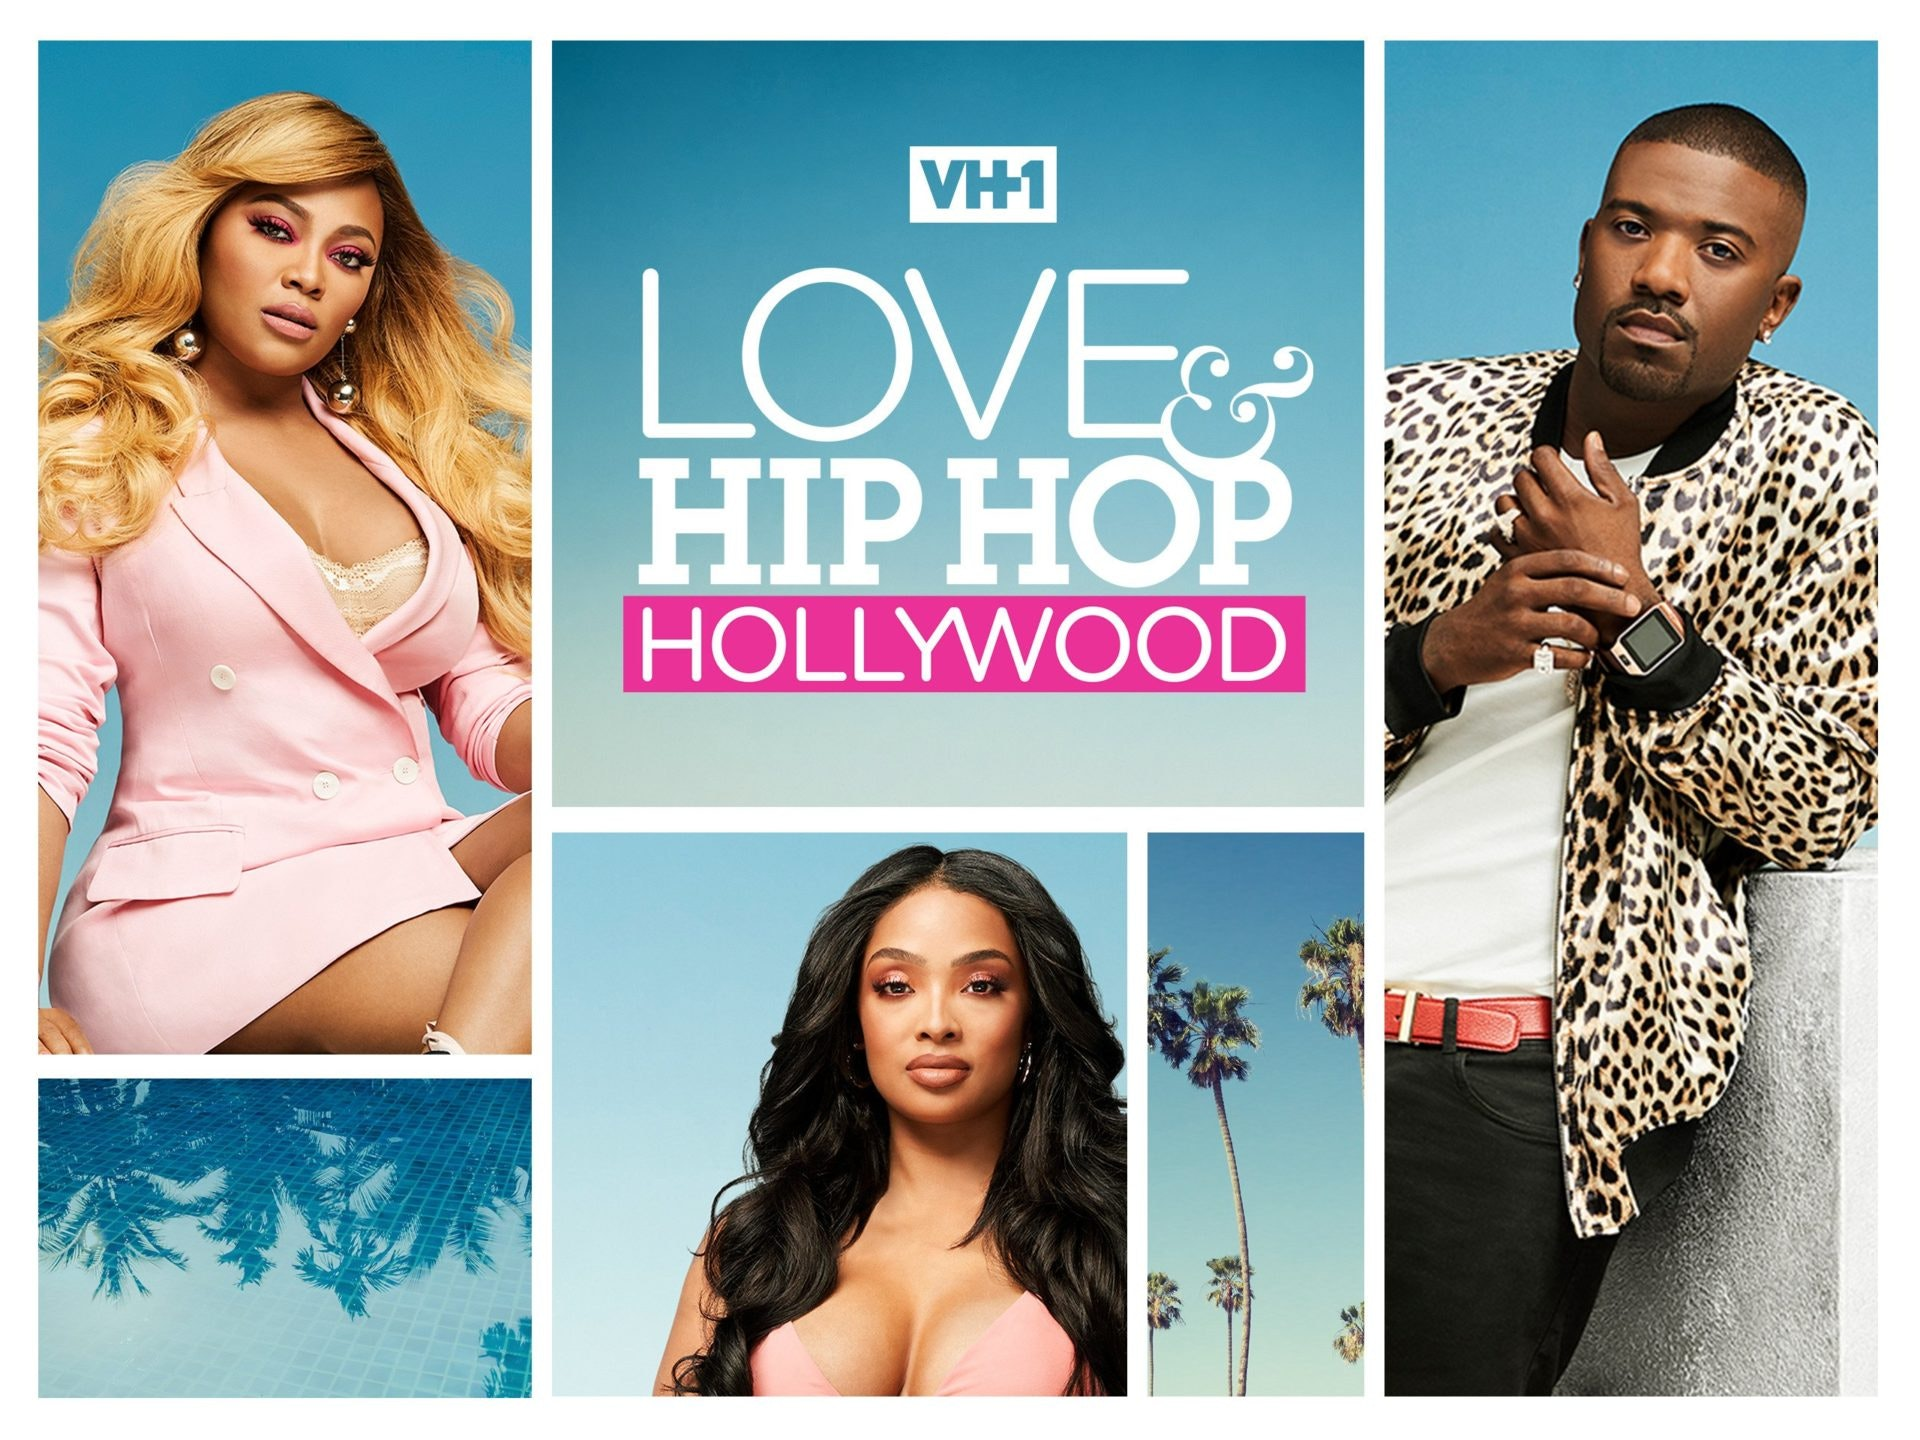 watch love and hip Hop Hollywood on Amazon